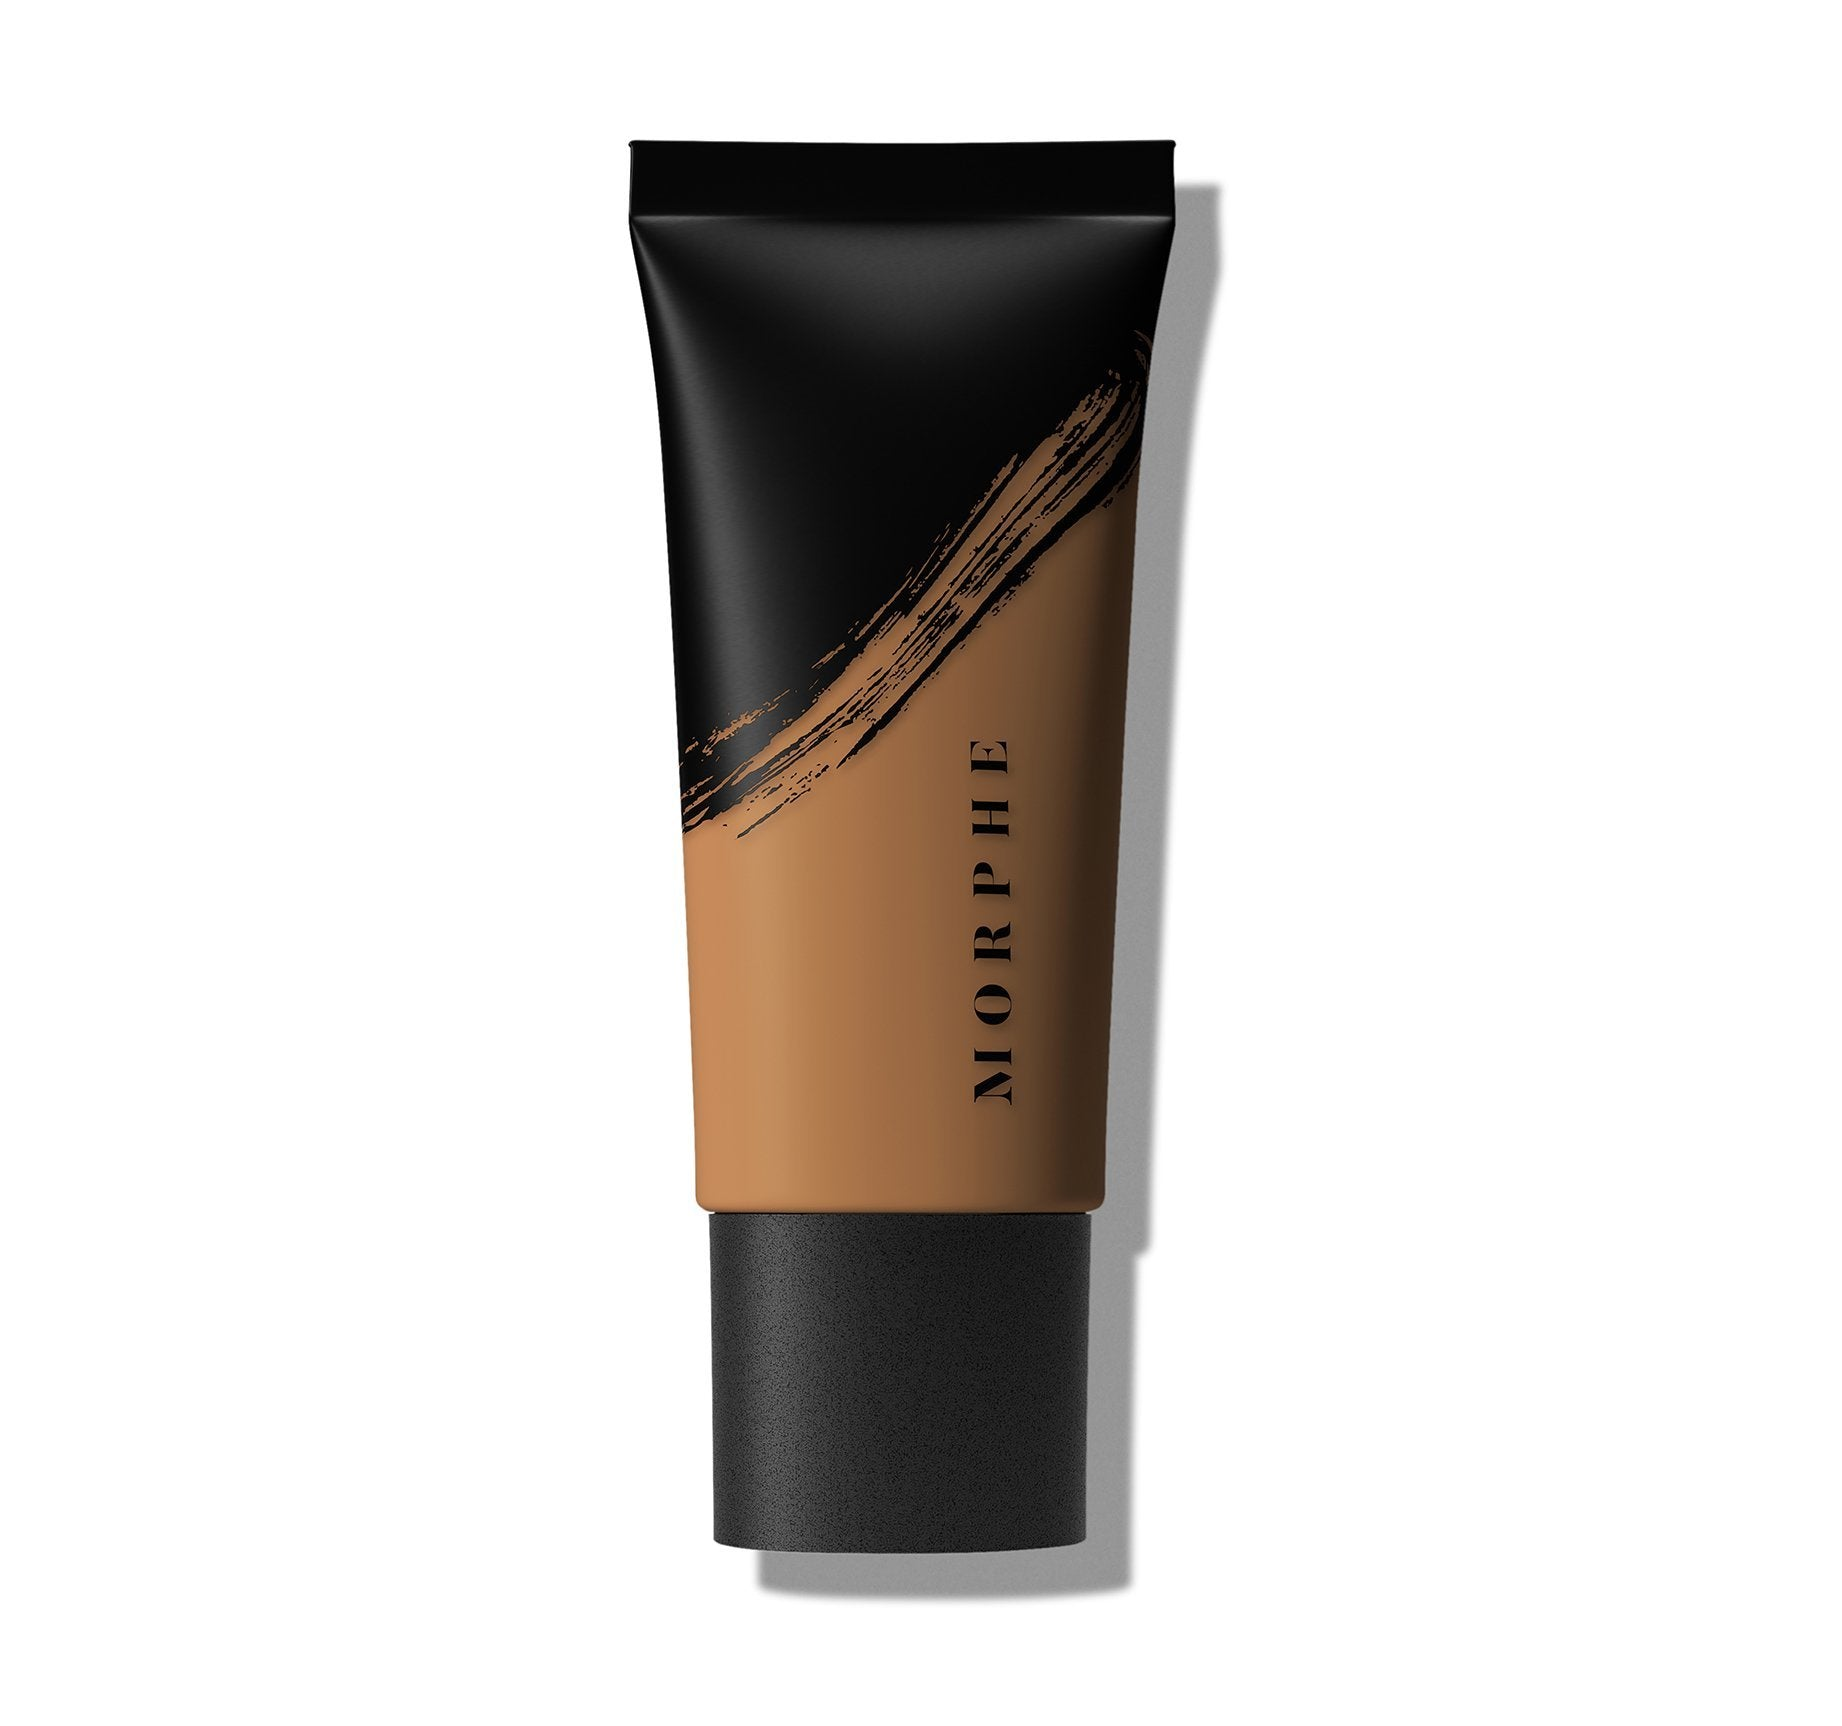 FLUIDITY FULL-COVERAGE FOUNDATION - F3.50, view larger image